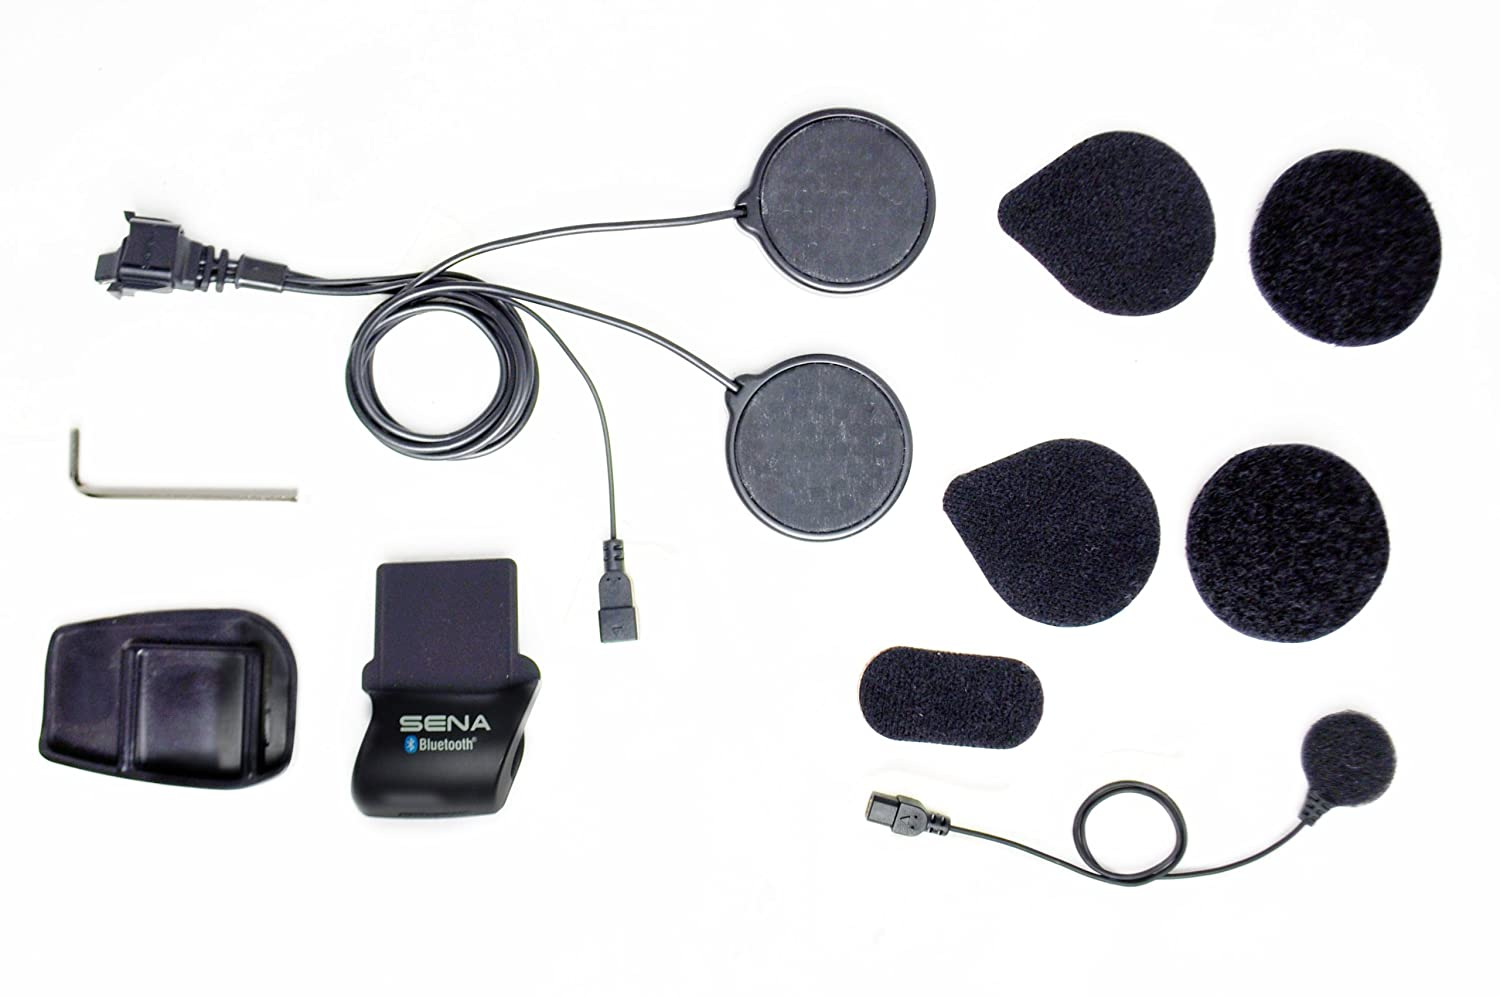 Sena Helmet Clamp Kit with Locking-Type Connector and Wired Microphone for SMH5 Bluetooth Headset Sena Bluetooth SMH5-A0312